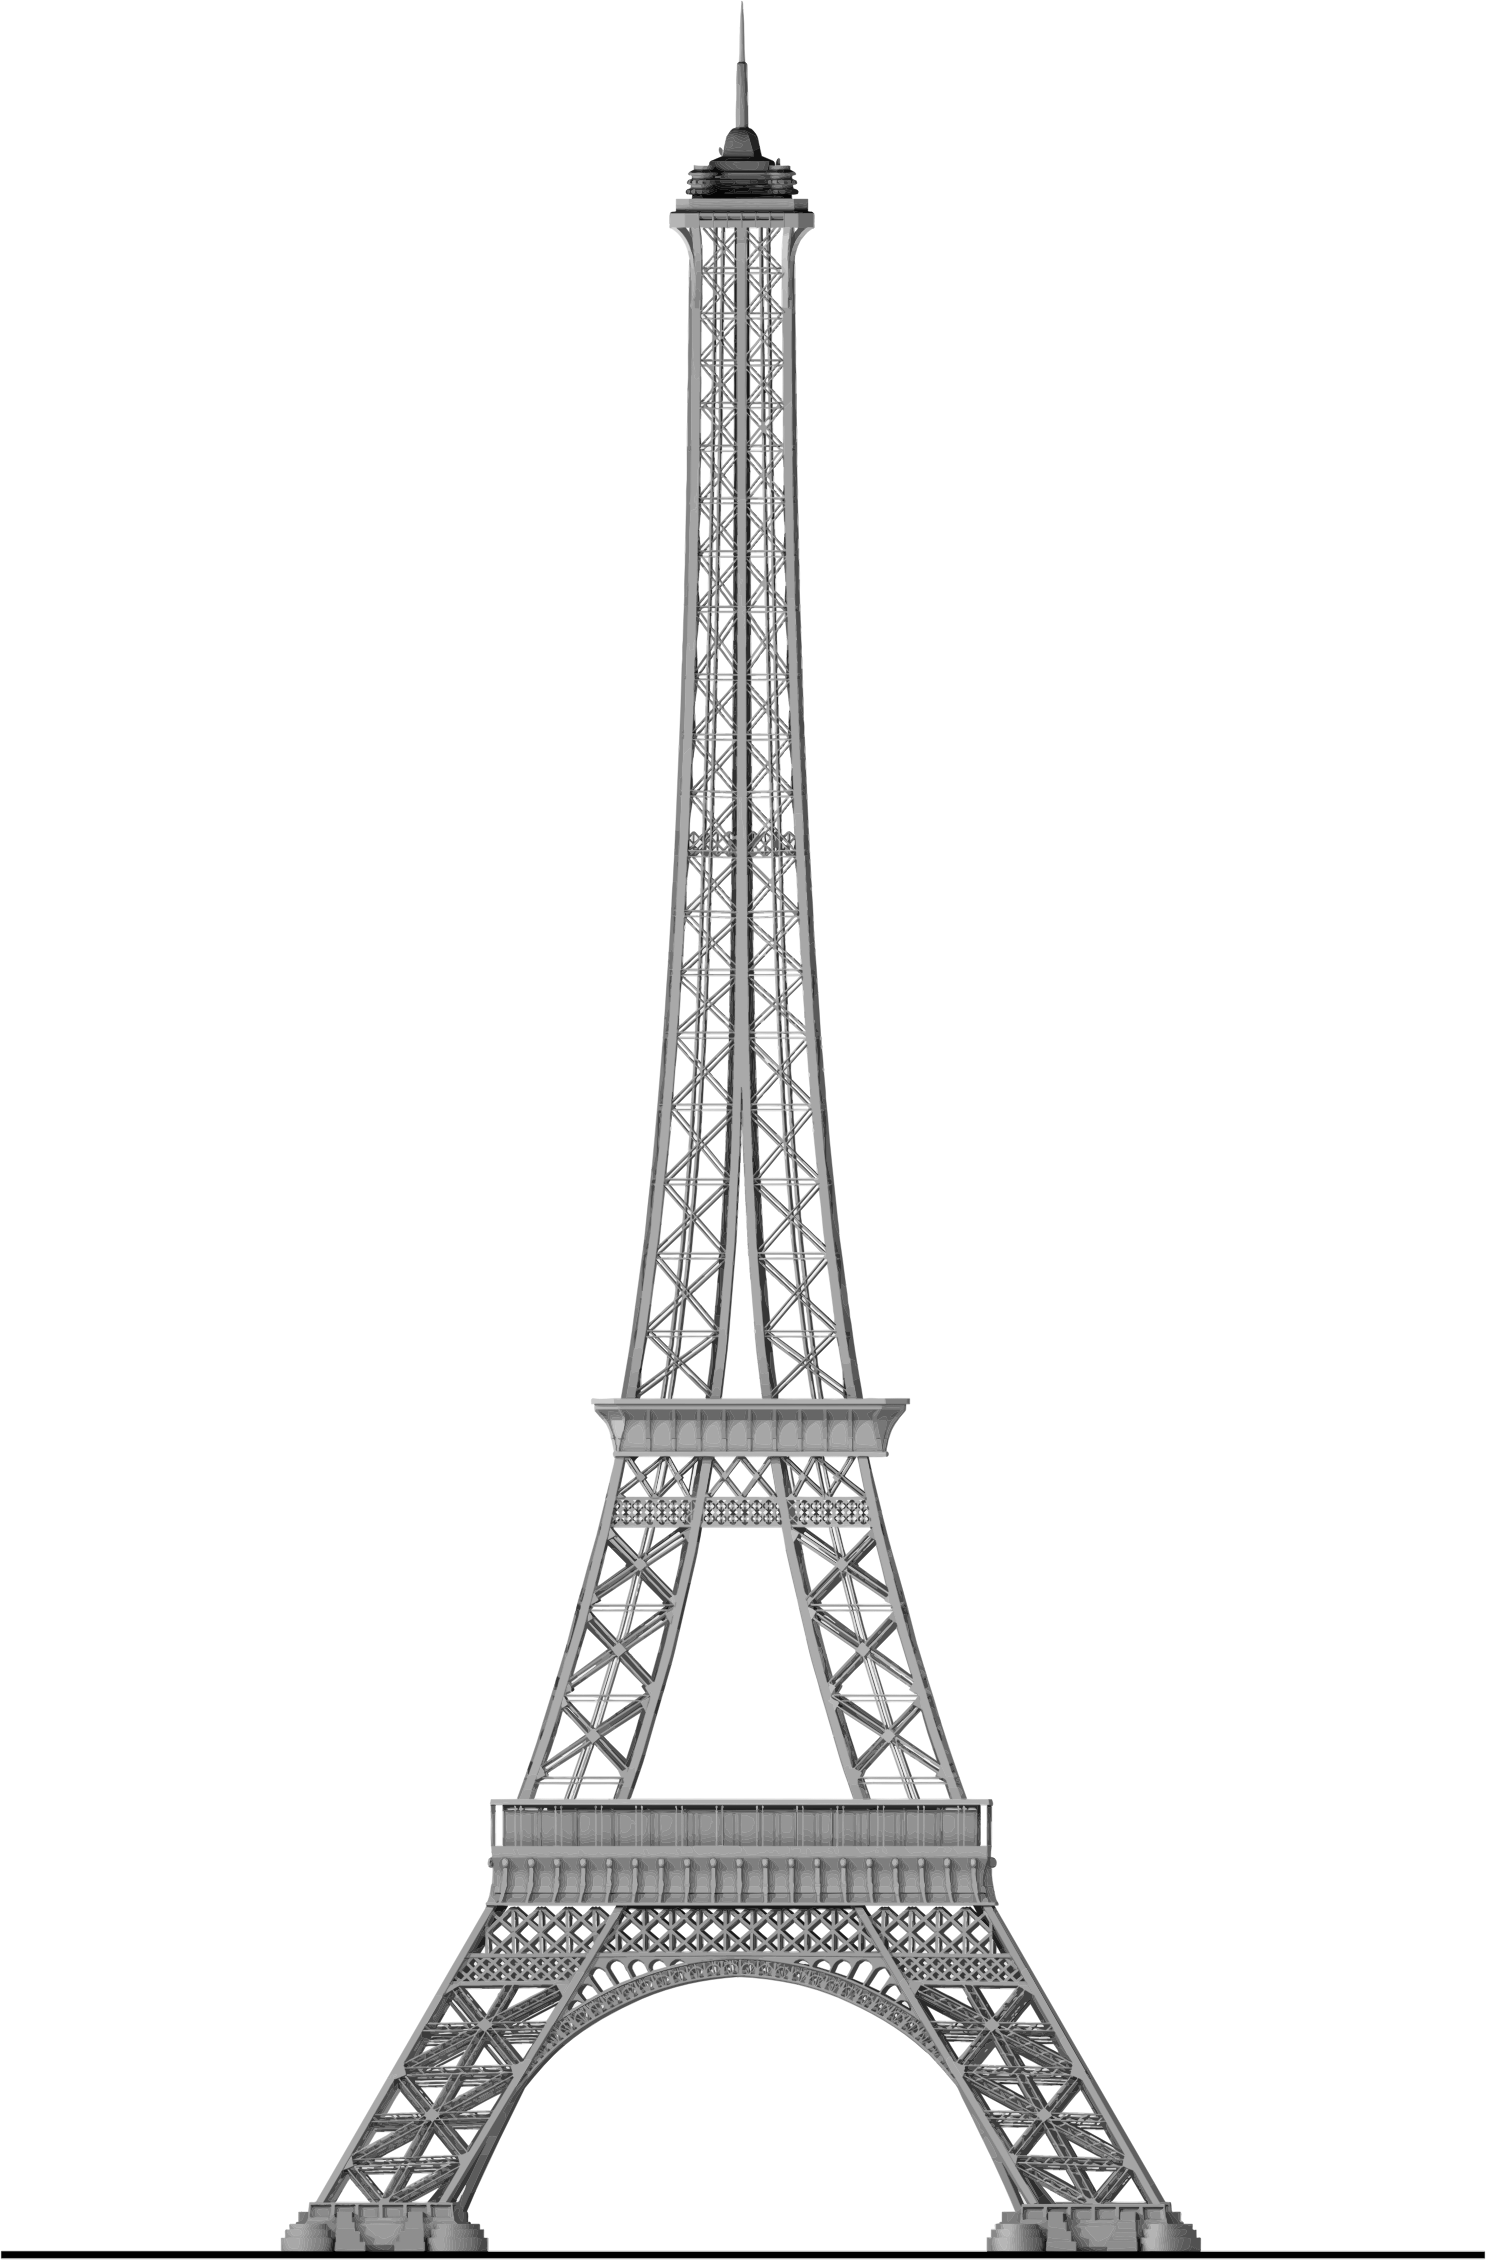 eifell tower drawing eiffel tower drawing dreams of an architect tower eifell drawing